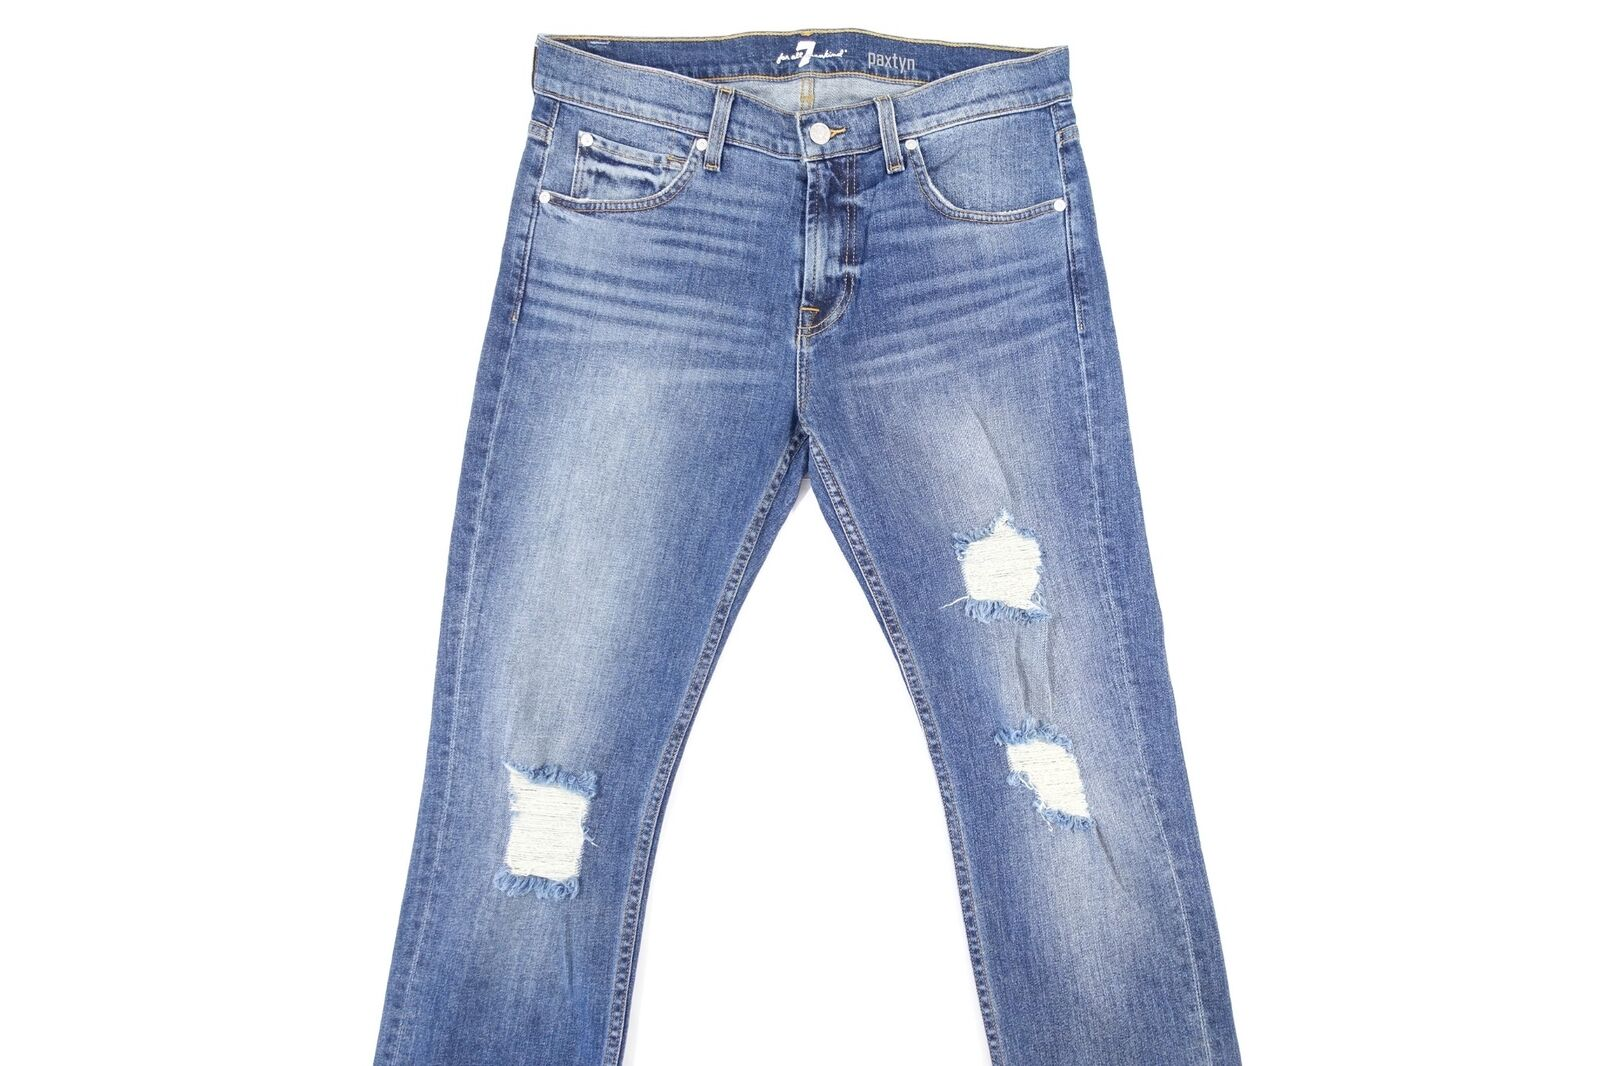 7 FOR ALL MANKIND DISTRESSED RIPPED CUT KNEE FADED blueE 34 PAXTYN SLIM JEANS NEW